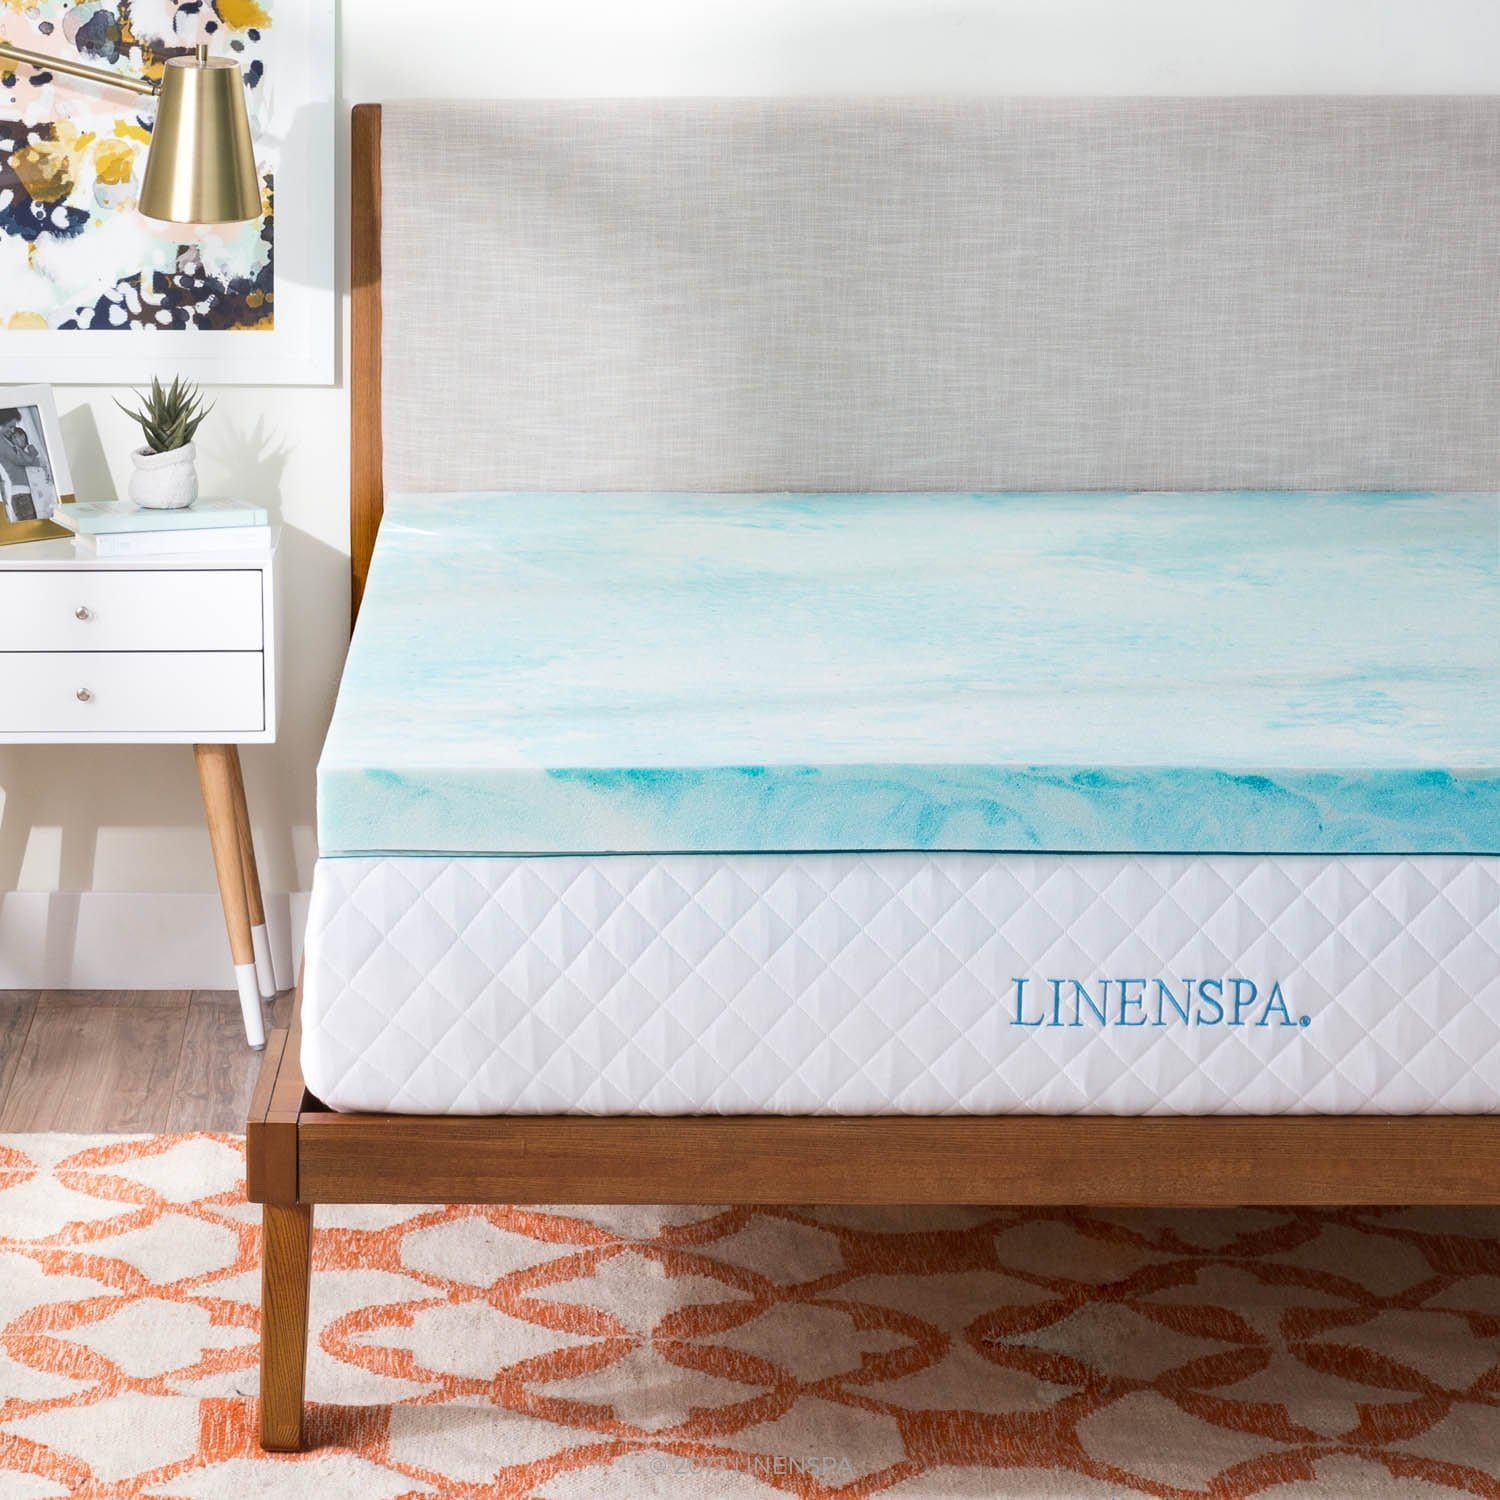 Linenspa Best Mattress Topper for Side Sleepers Review by www.snoremagazine.com